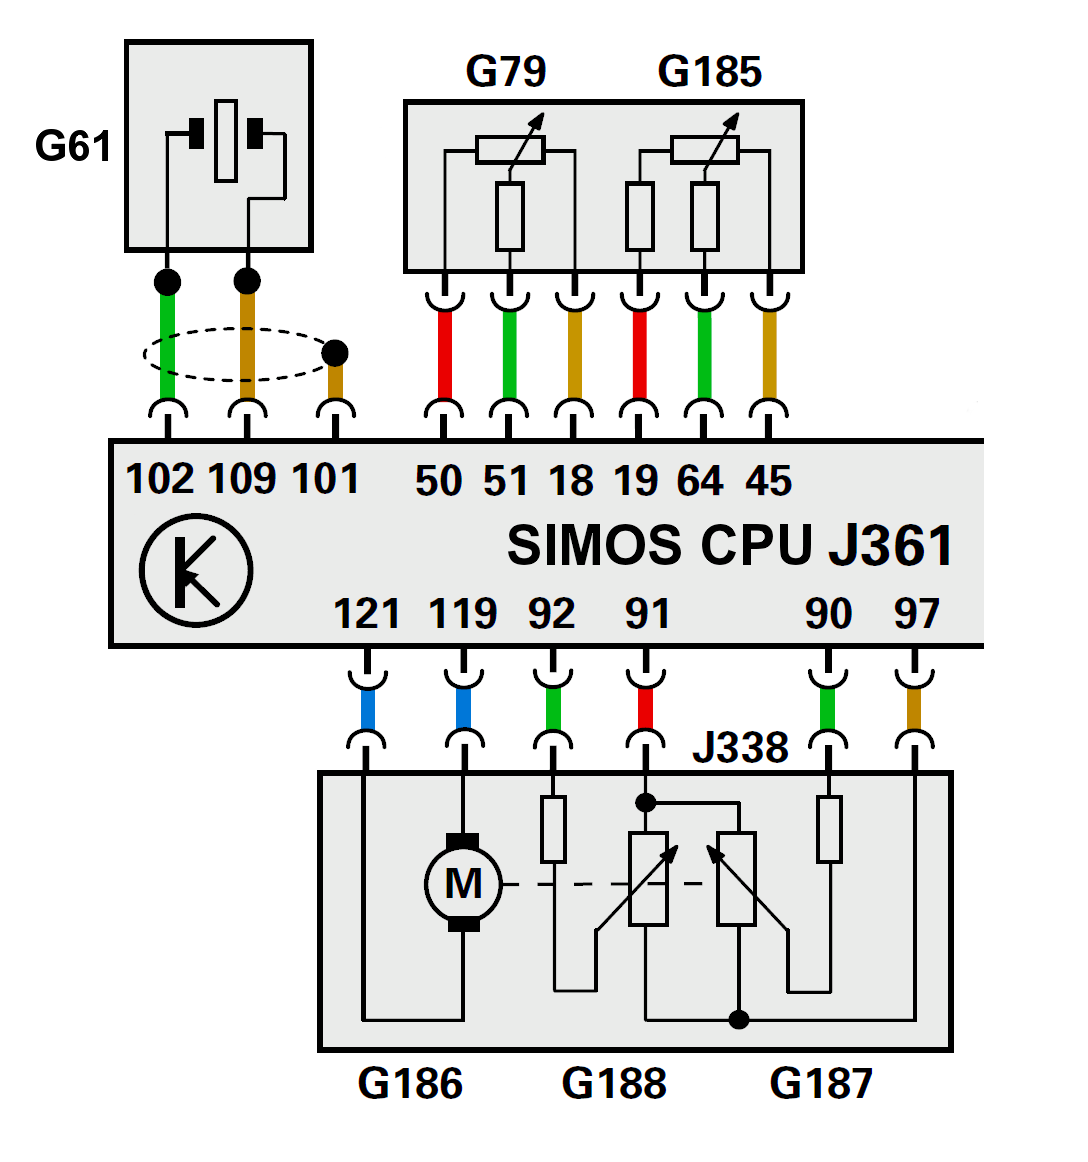 small resolution of siemens simos ecu j361 with pin connections